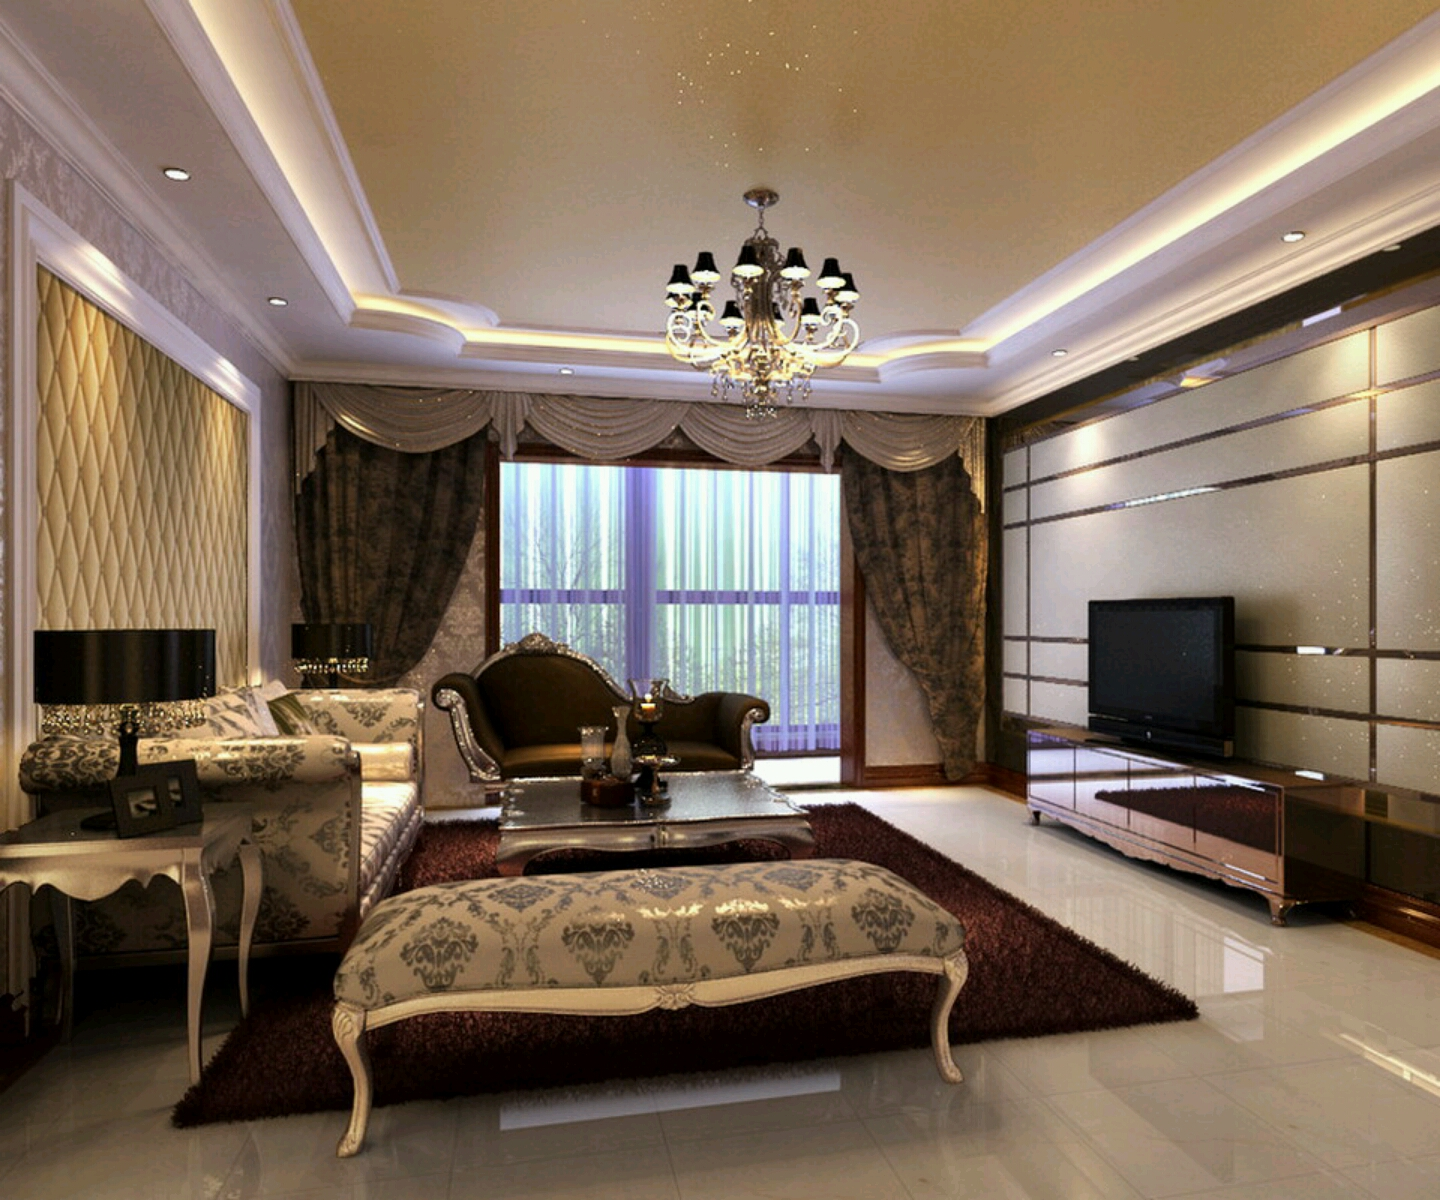 New home designs latest luxury homes interior decoration Interior sitting room